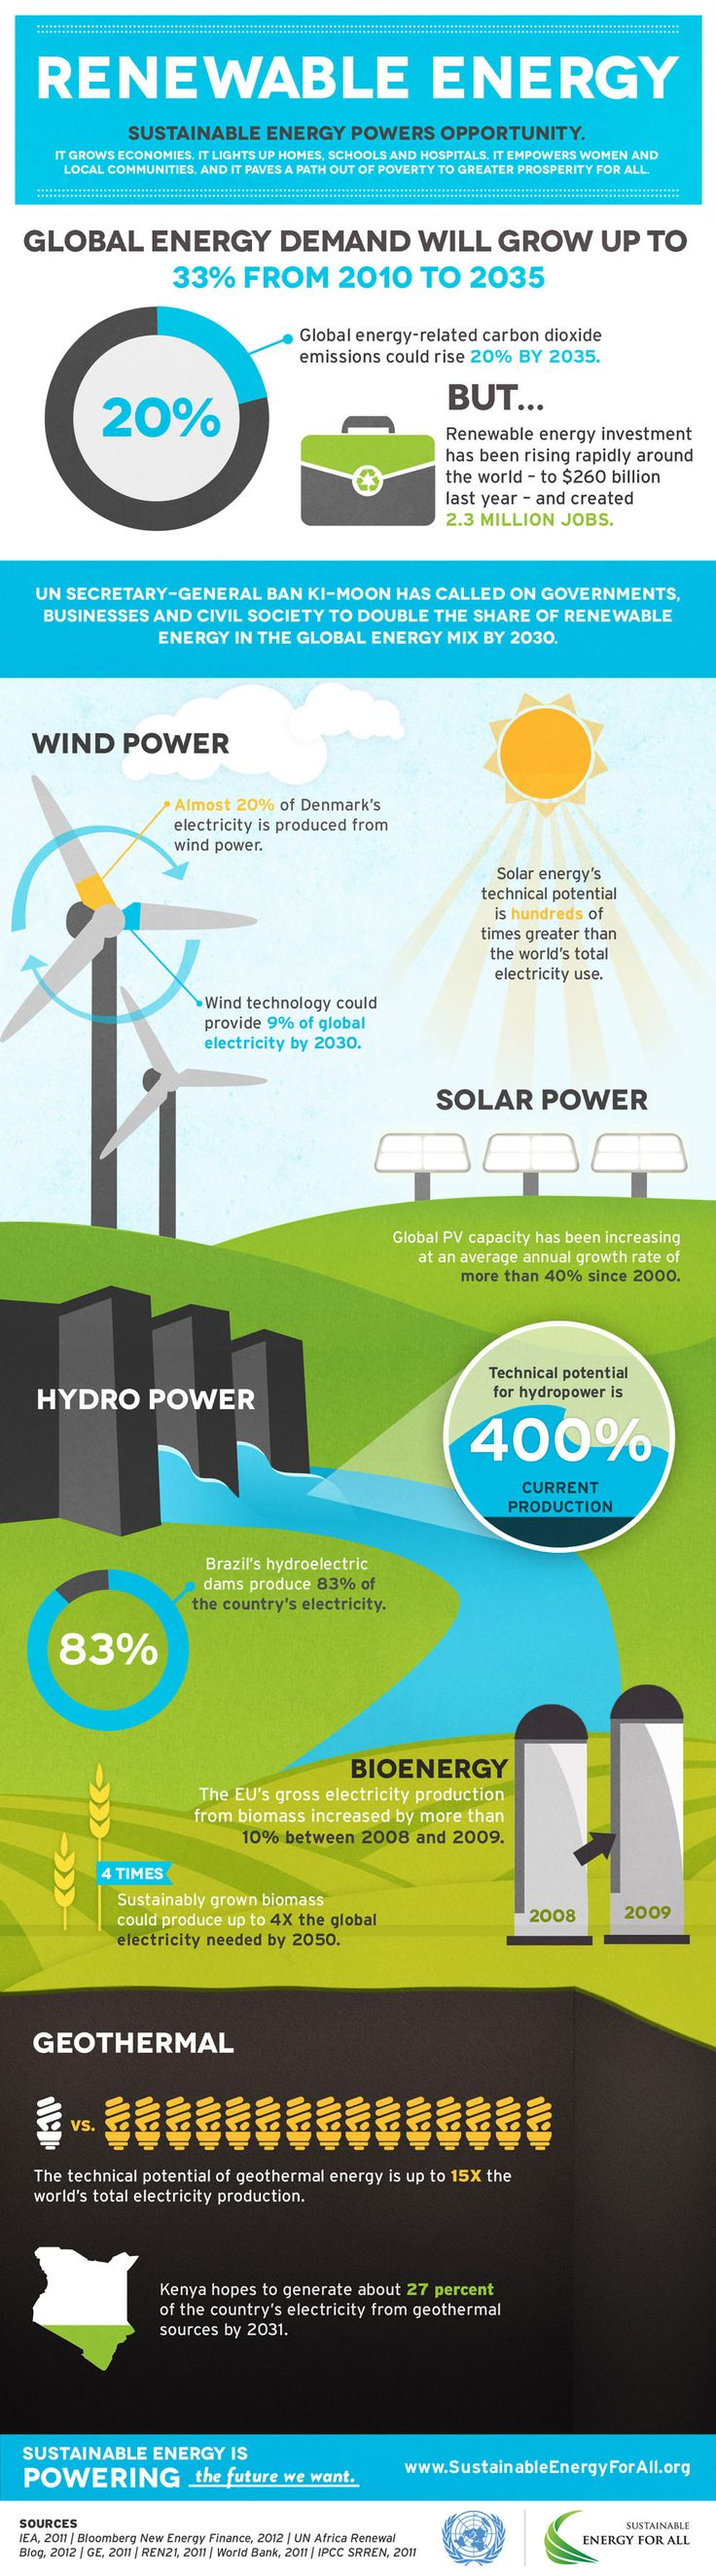 Sustainable Energy Power Opportunities, Global Energy Demand will grow up to 33% from 2010 to 2035.